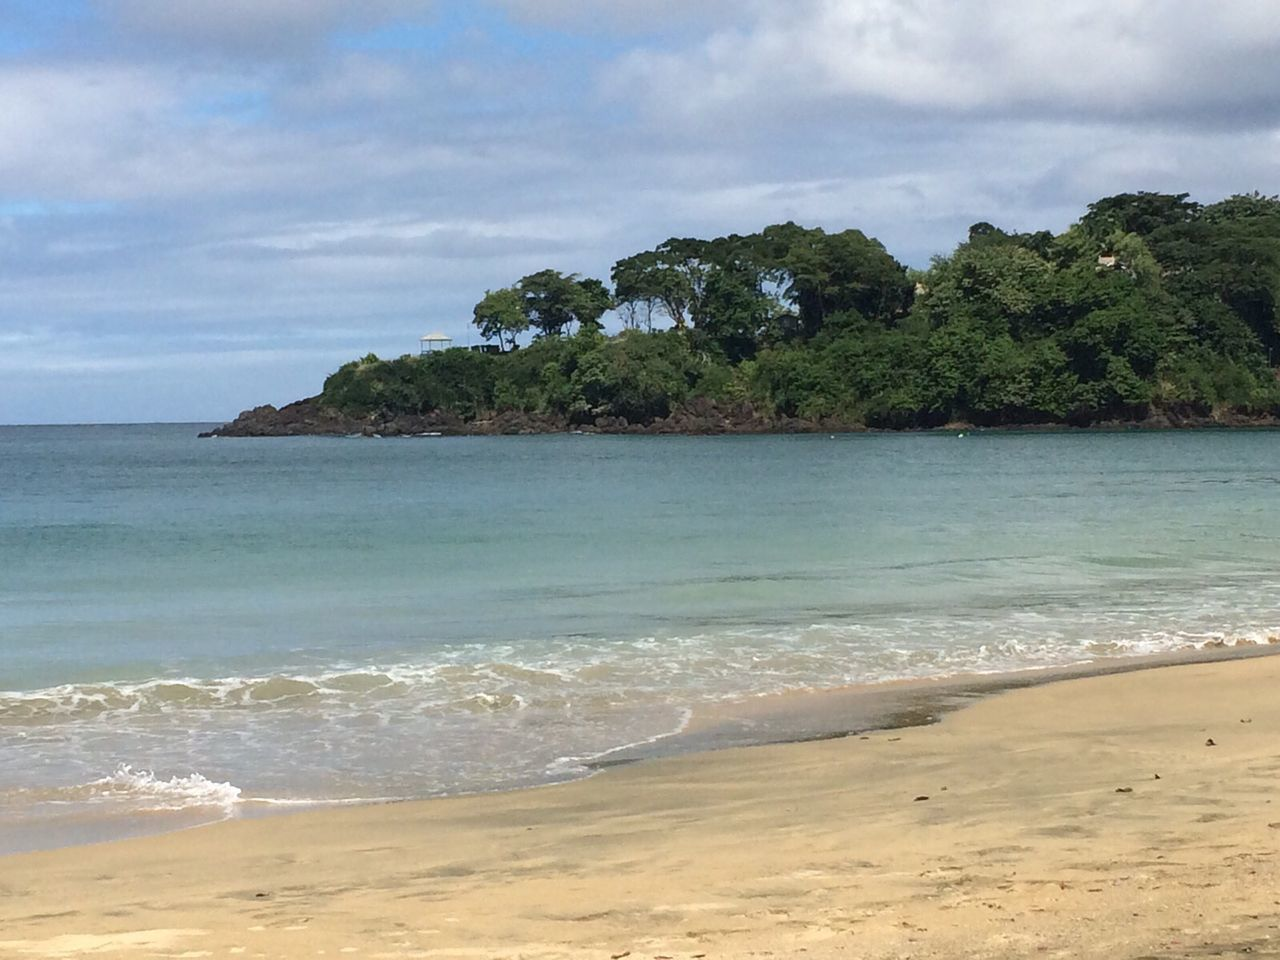 Beach Beauty In Nature Cloud - Sky Day Graftonbeach Horizon Over Water Nature No People Outdoors Sand Scenics Sea Shore Sky Tobago Tobago Beach Tranquil Scene Tranquility Tree Trinidad Trinidad And Tobago Water